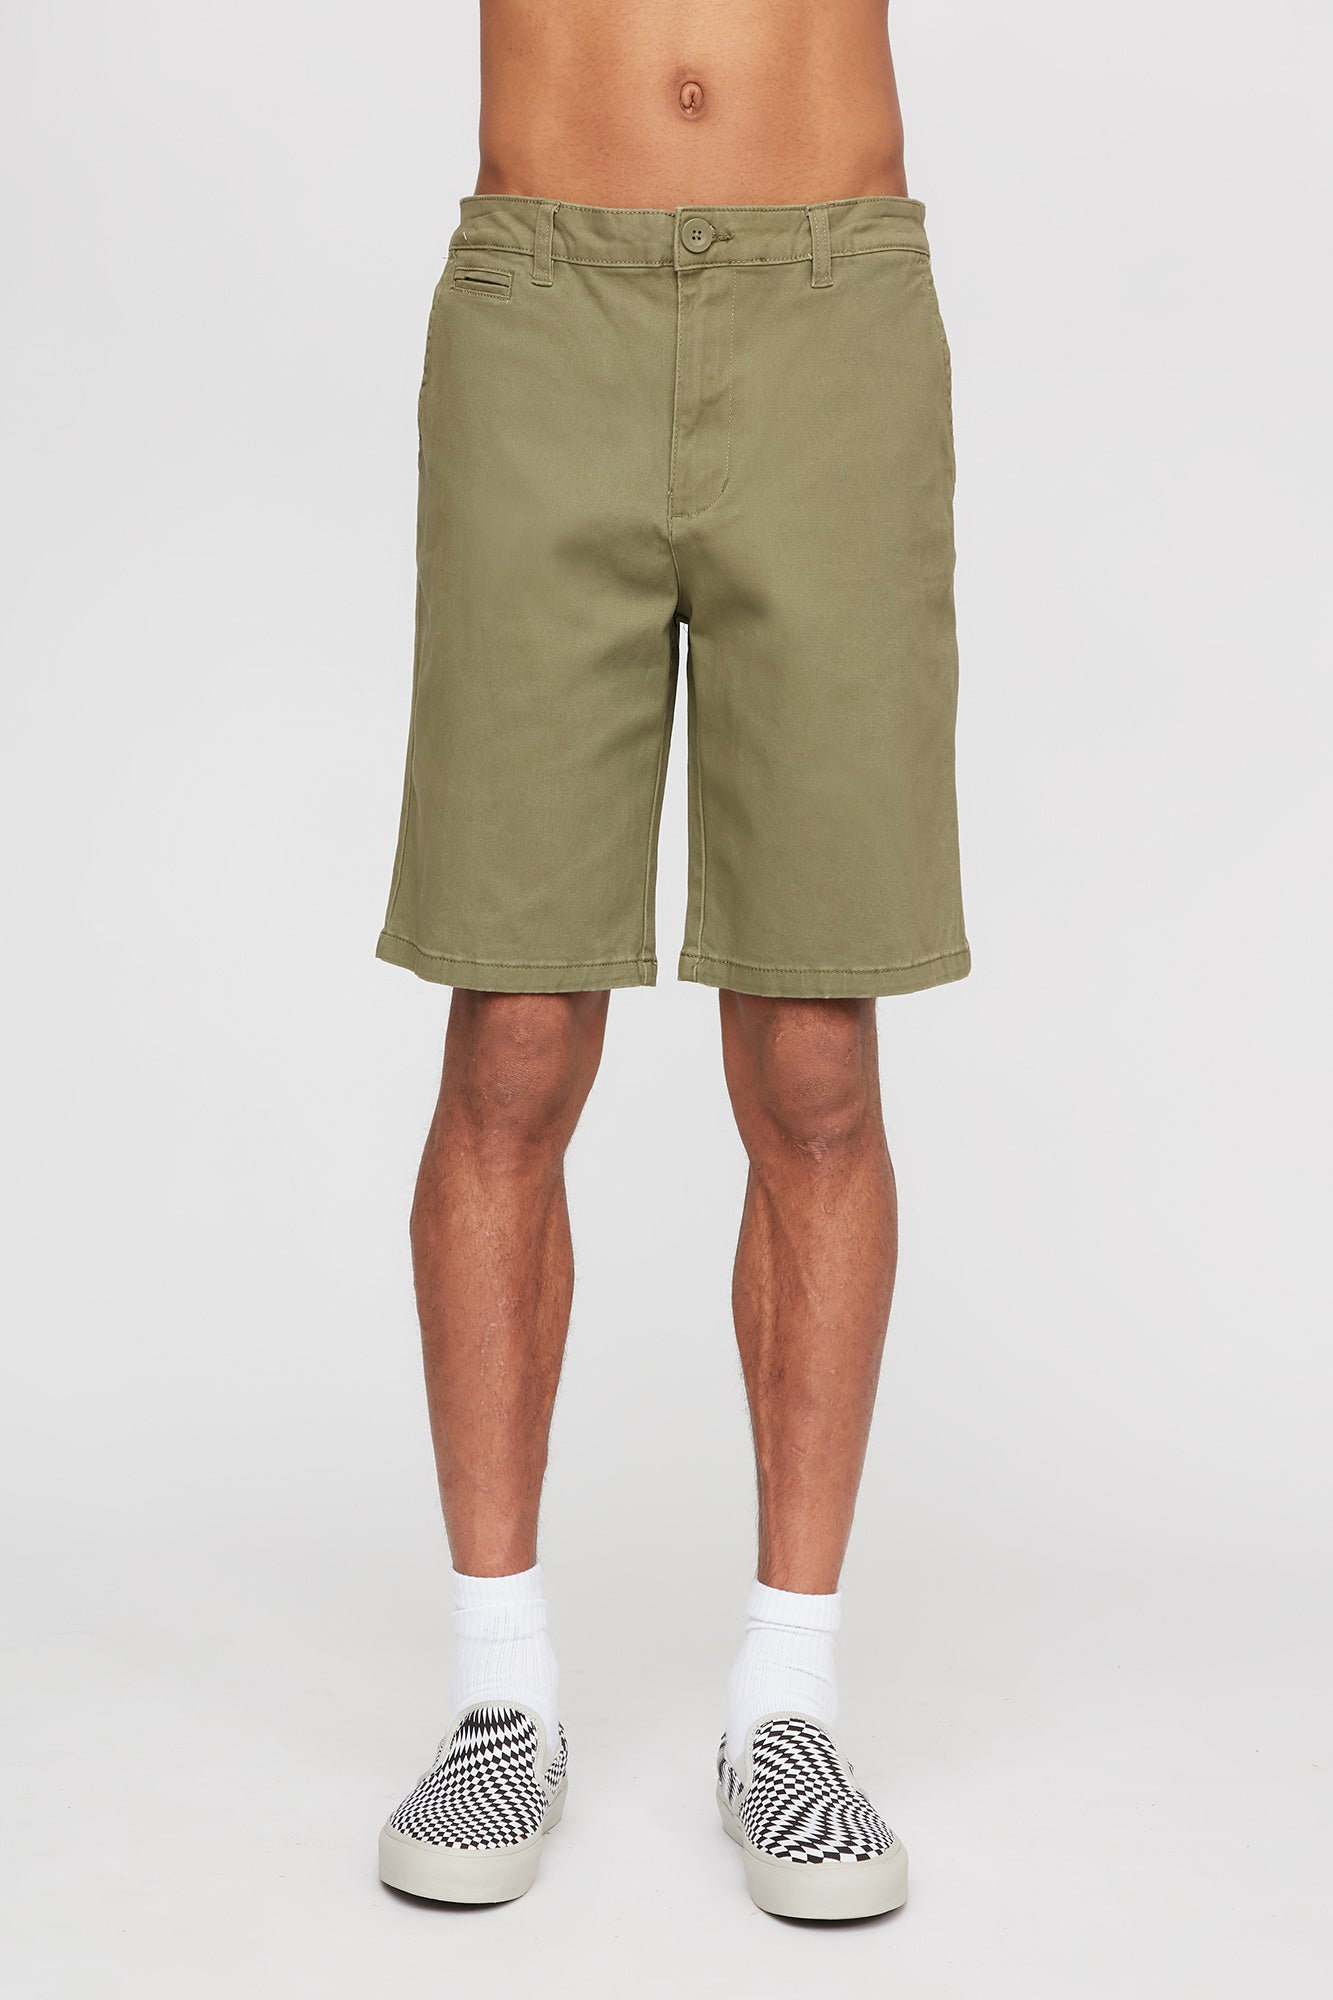 West 49 Mens Chino Relaxed Shorts